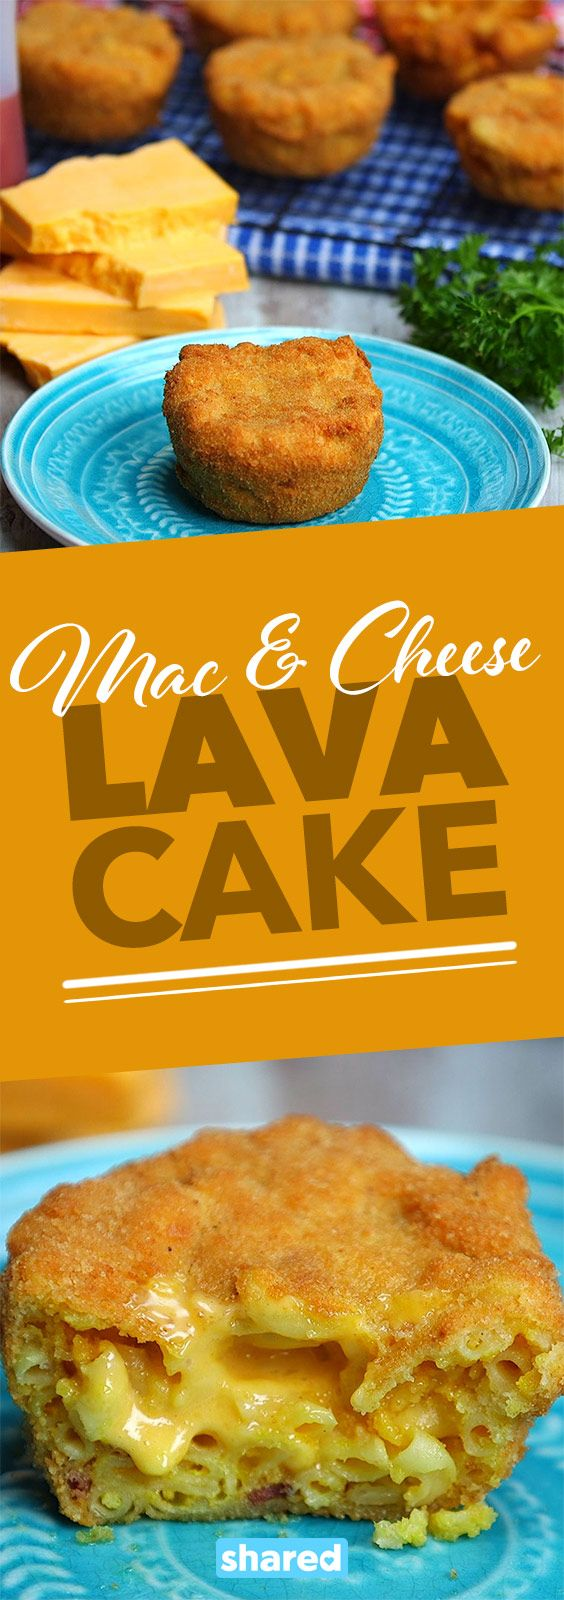 Mac & Cheese Lava Cake